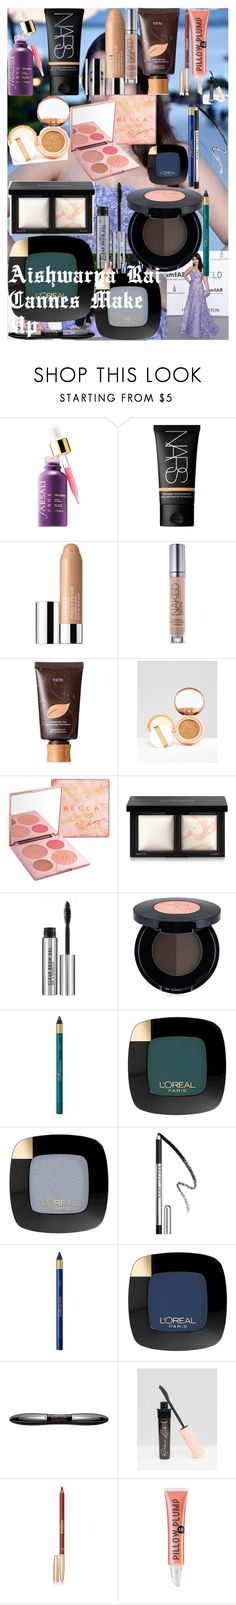 Aishwarya Rai Cannes Make Up by oroartye-1 on Polyvore featuring beauty, Sisley, NARS Cosmetics, tarte, Bare Escentuals, L'Oréal Paris, Urban Decay, Marc Jacobs, Clinique and Anastasia Beverly Hills